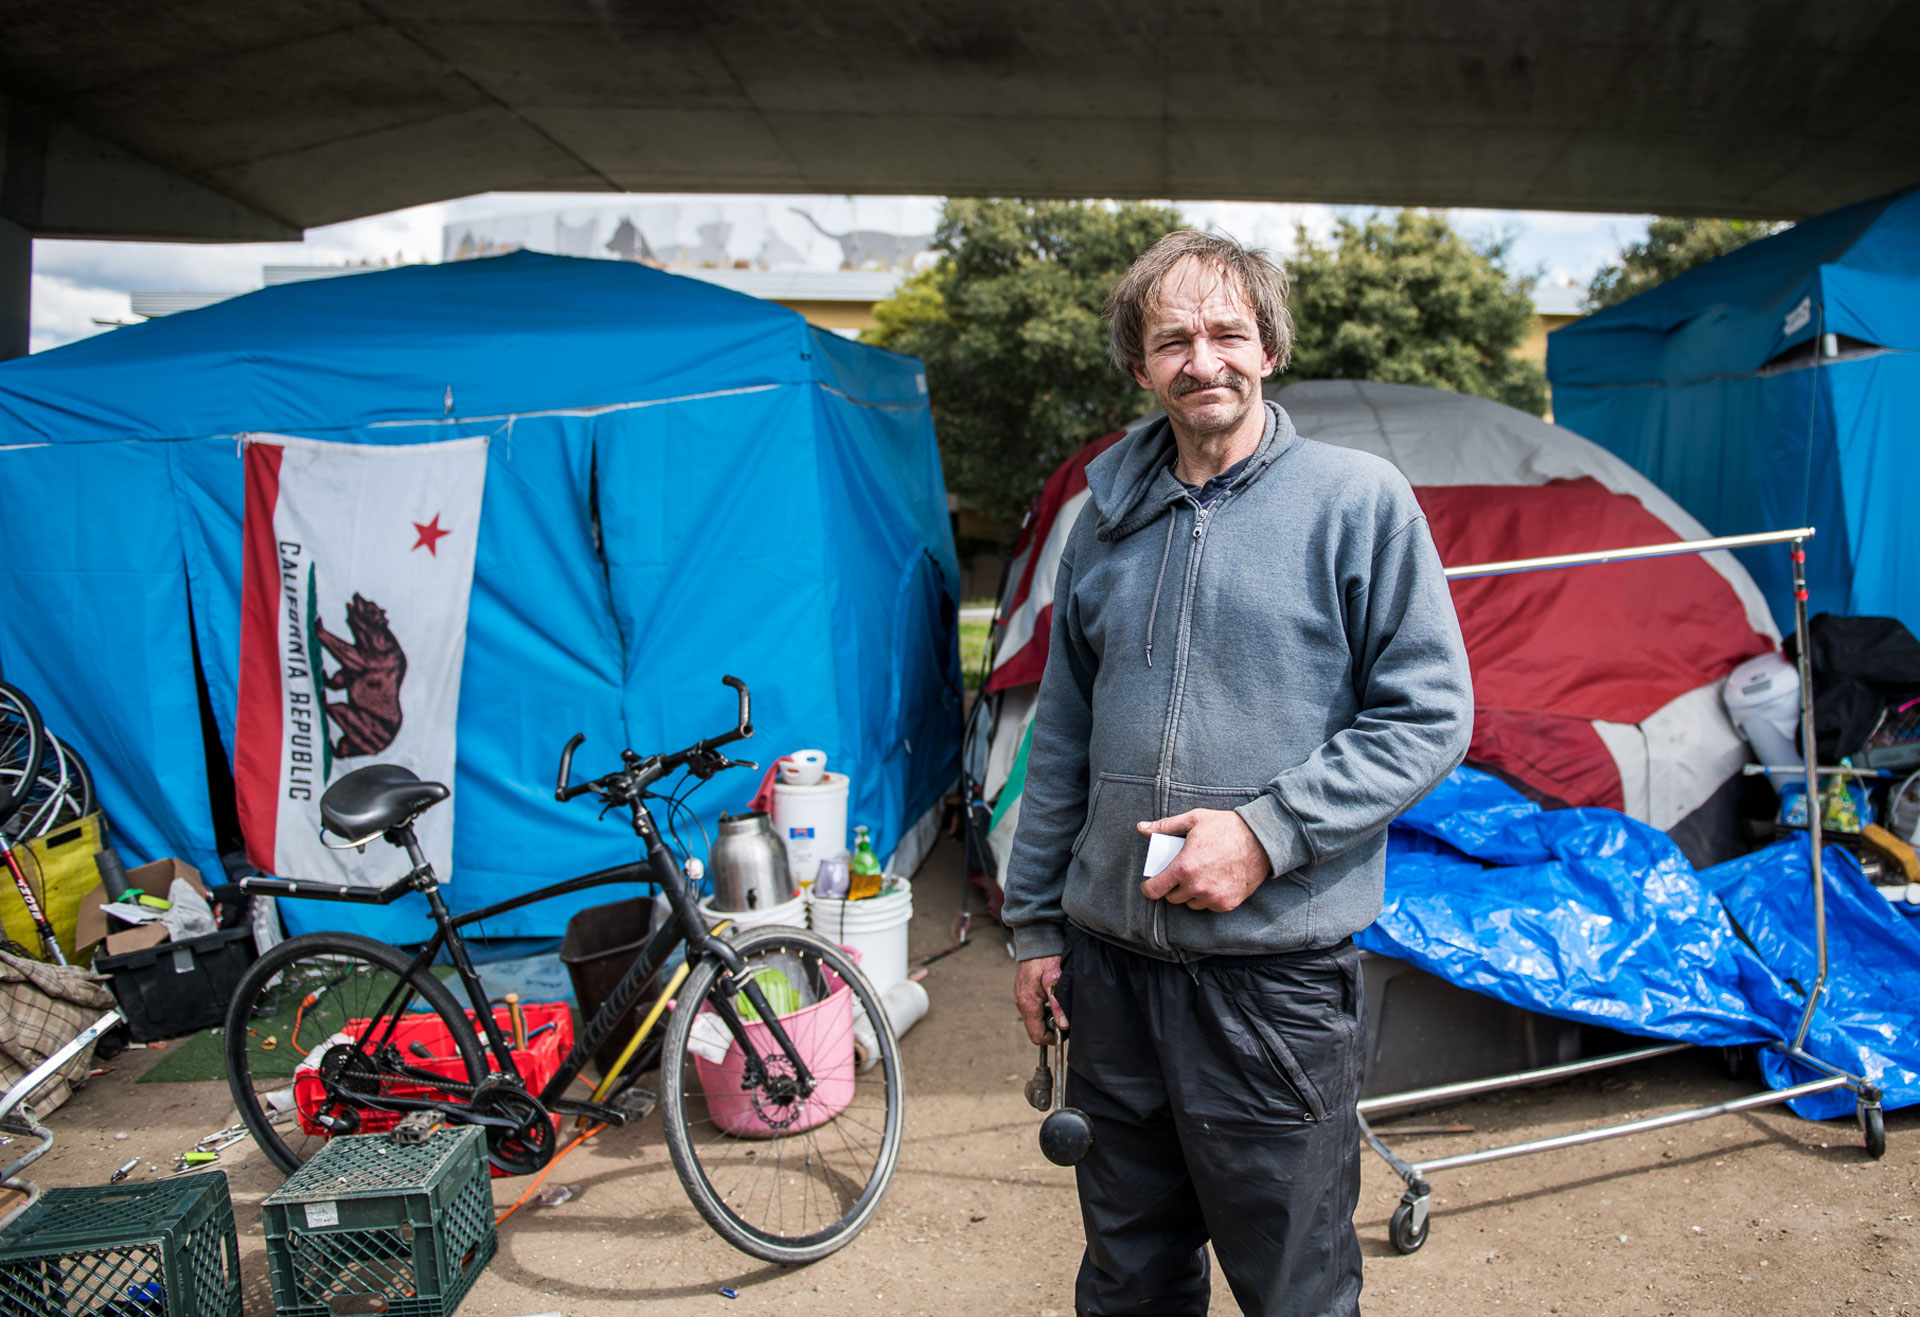 "Kevin Coddington, 52, at the tent encampment where he lives under a freeway overpass in Berkeley on Mar. 19, 2020. When asked about outreach to his community in response to the coronavirus crisis, he said, ""It's very scary. They haven't given us anything."" He said that private donations were all that they had received, which helps them to supply their own portable restrooms, but that they could use running water as well as masks, gloves and sanitizer."